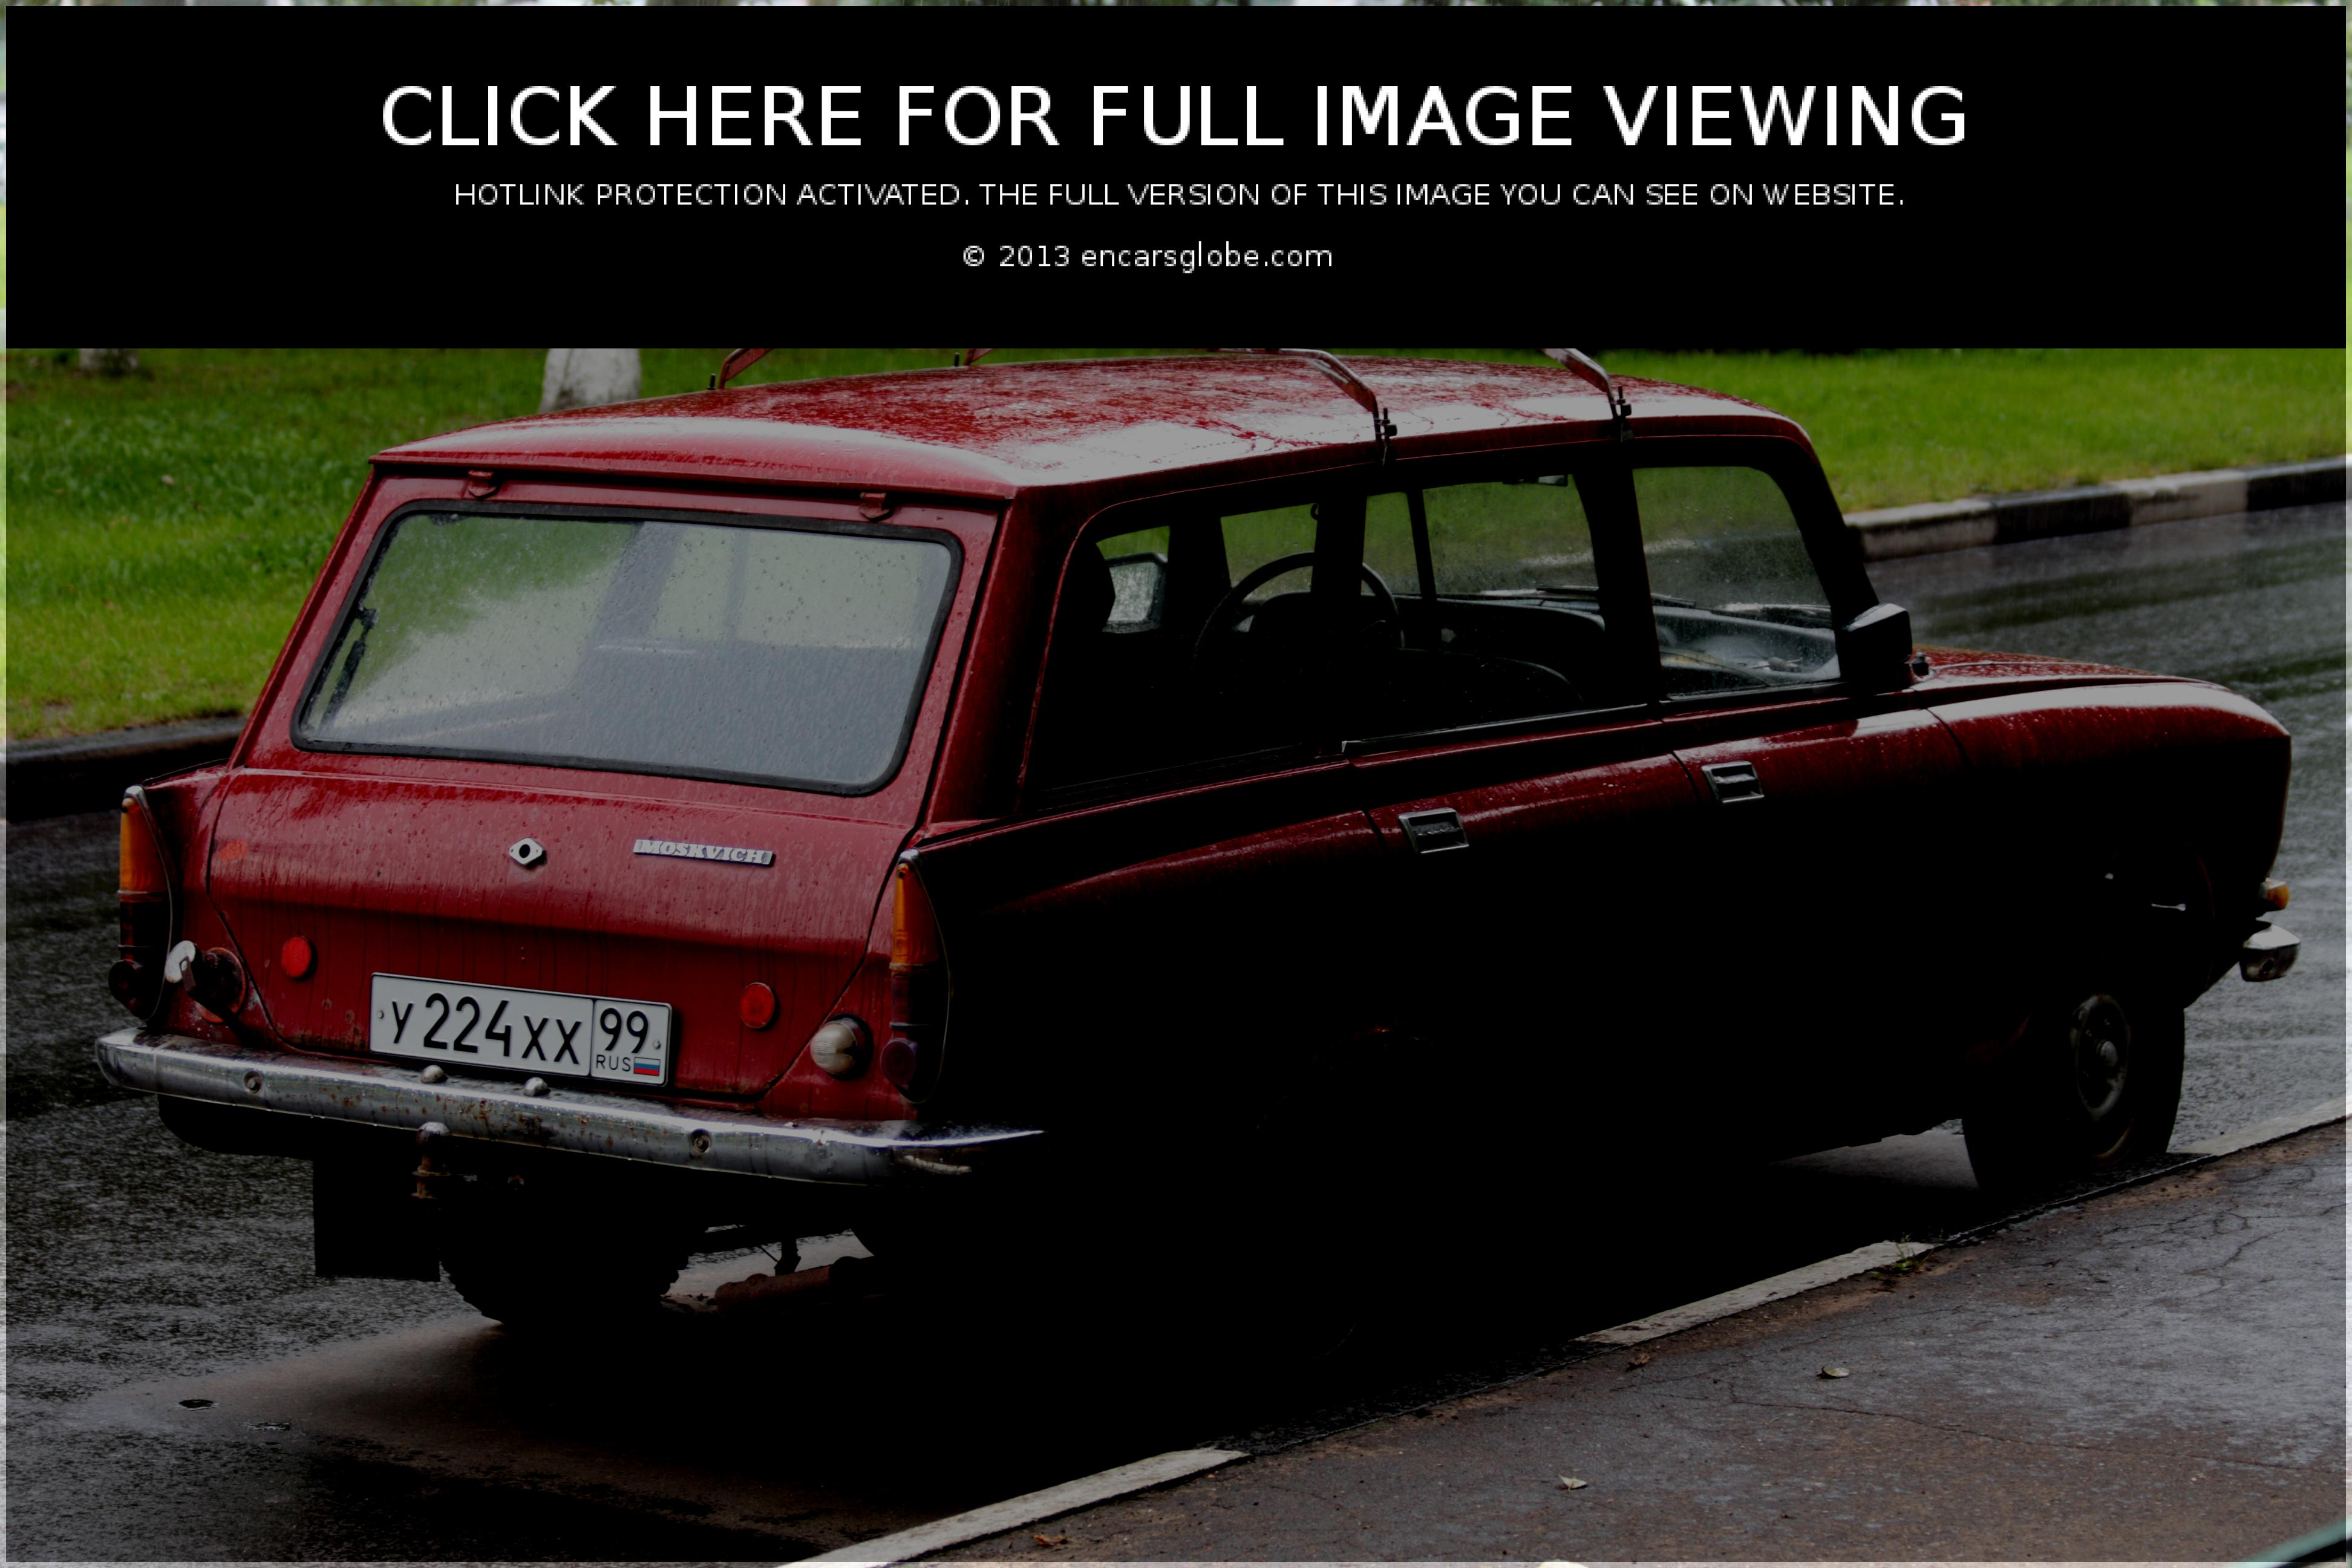 Gallery of all models of Moskvitch: Moskvitch 1500, Moskvitch 1500 ...